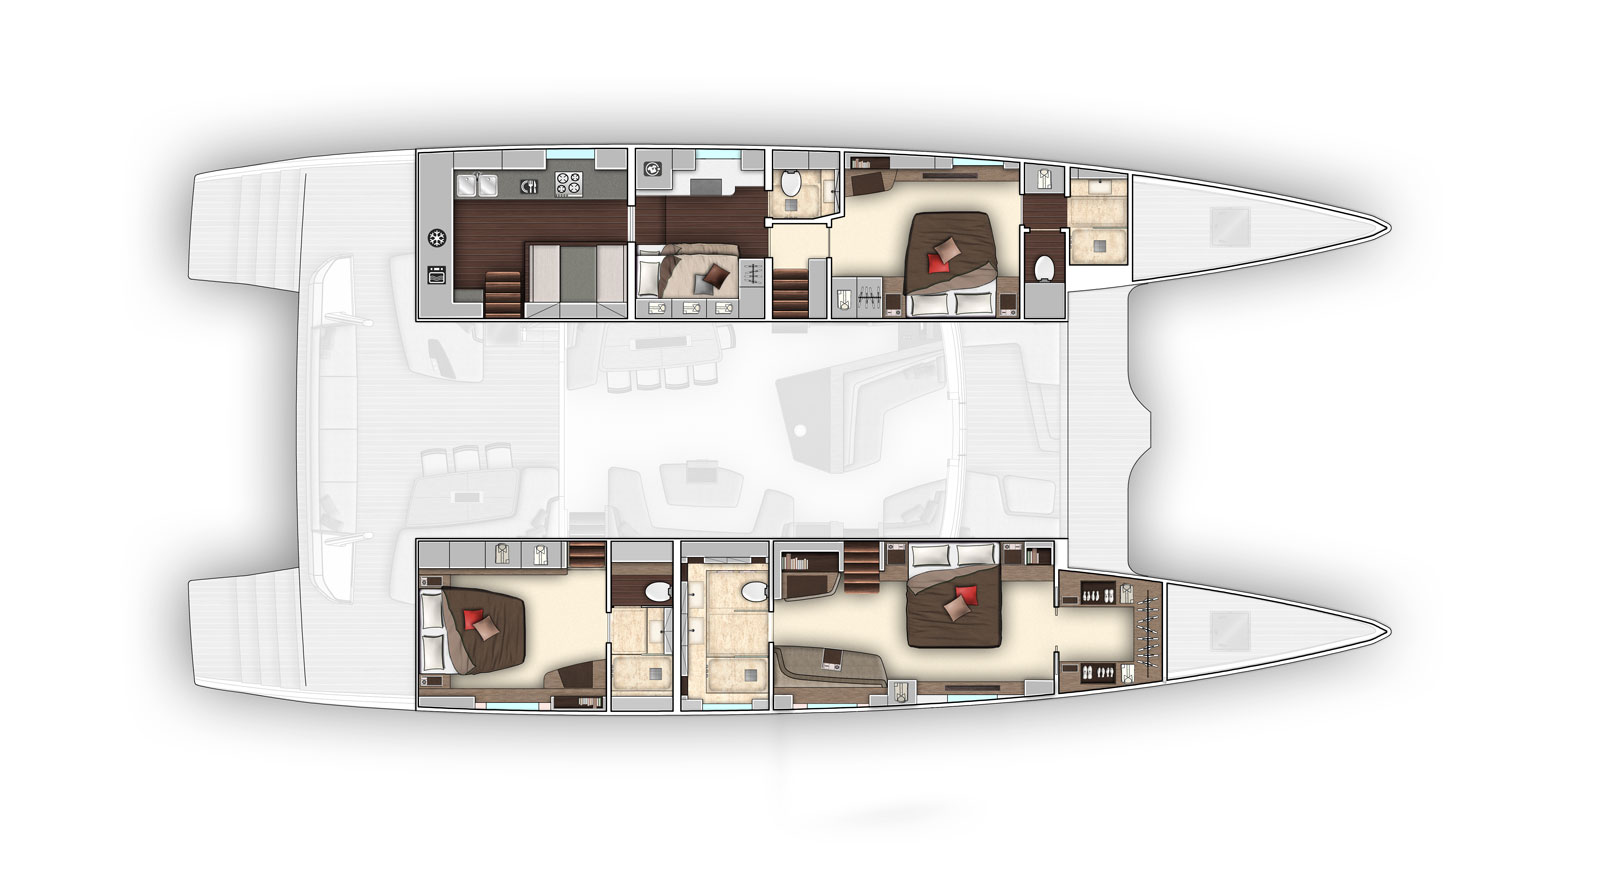 New Sail Catamarans for Sale  SEVENTY 7 Layout & Accommodations